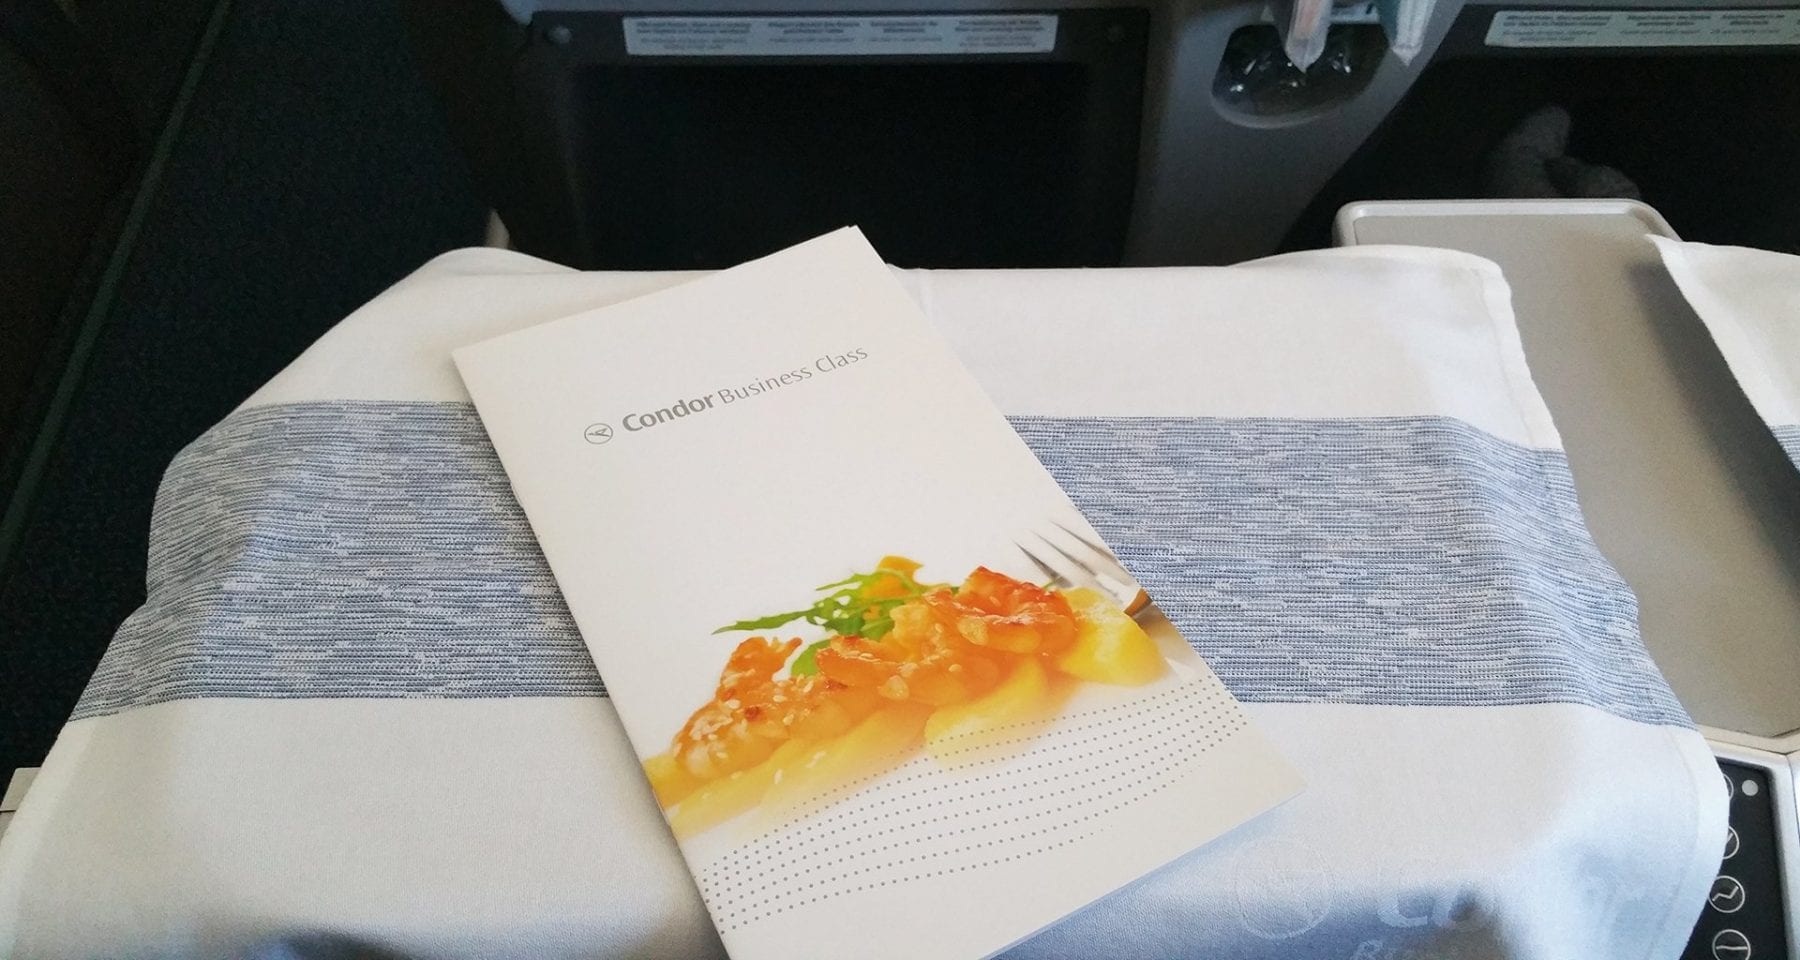 condor airlines inflight menu